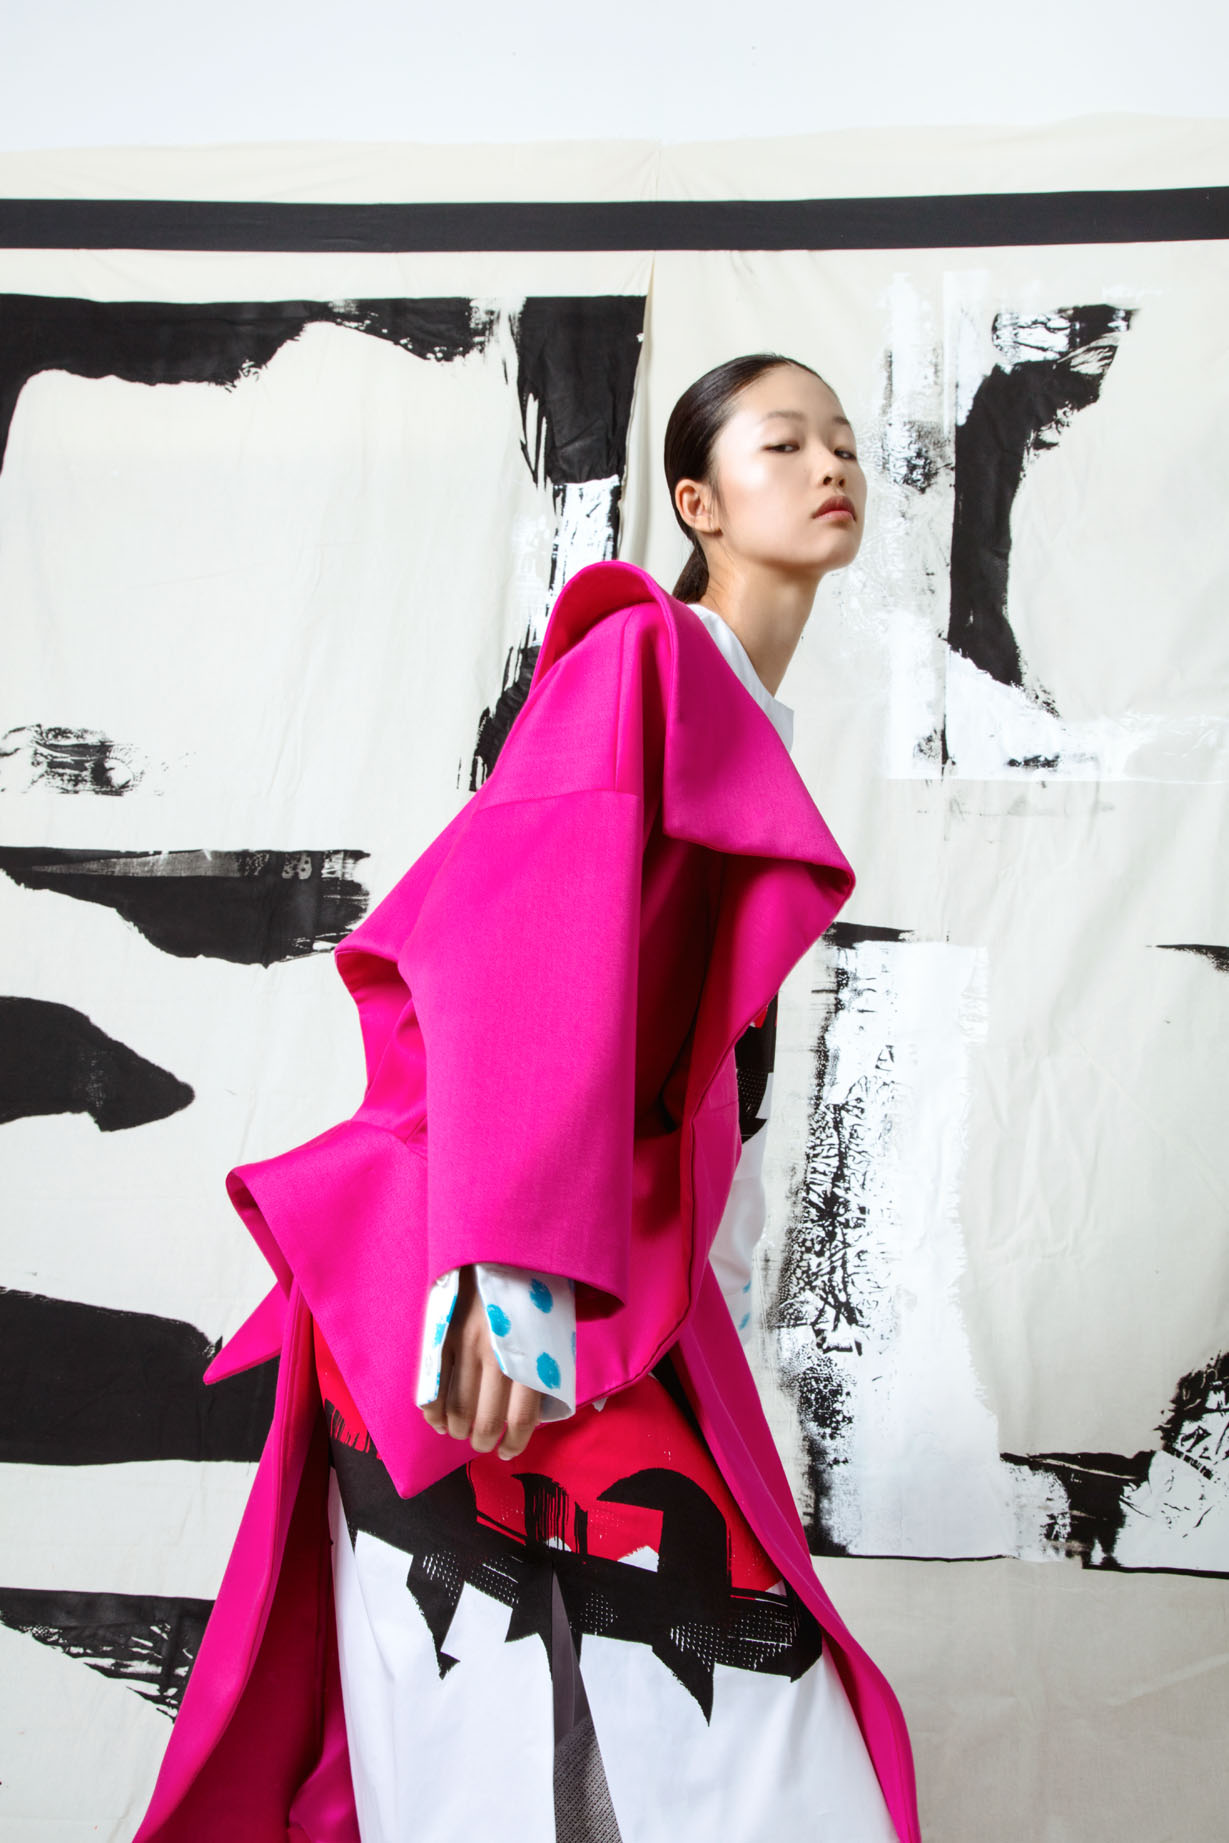 Academy Of Art University At New York Fashion Week Ss2019 Pre Show Press Release Fashion School Daily